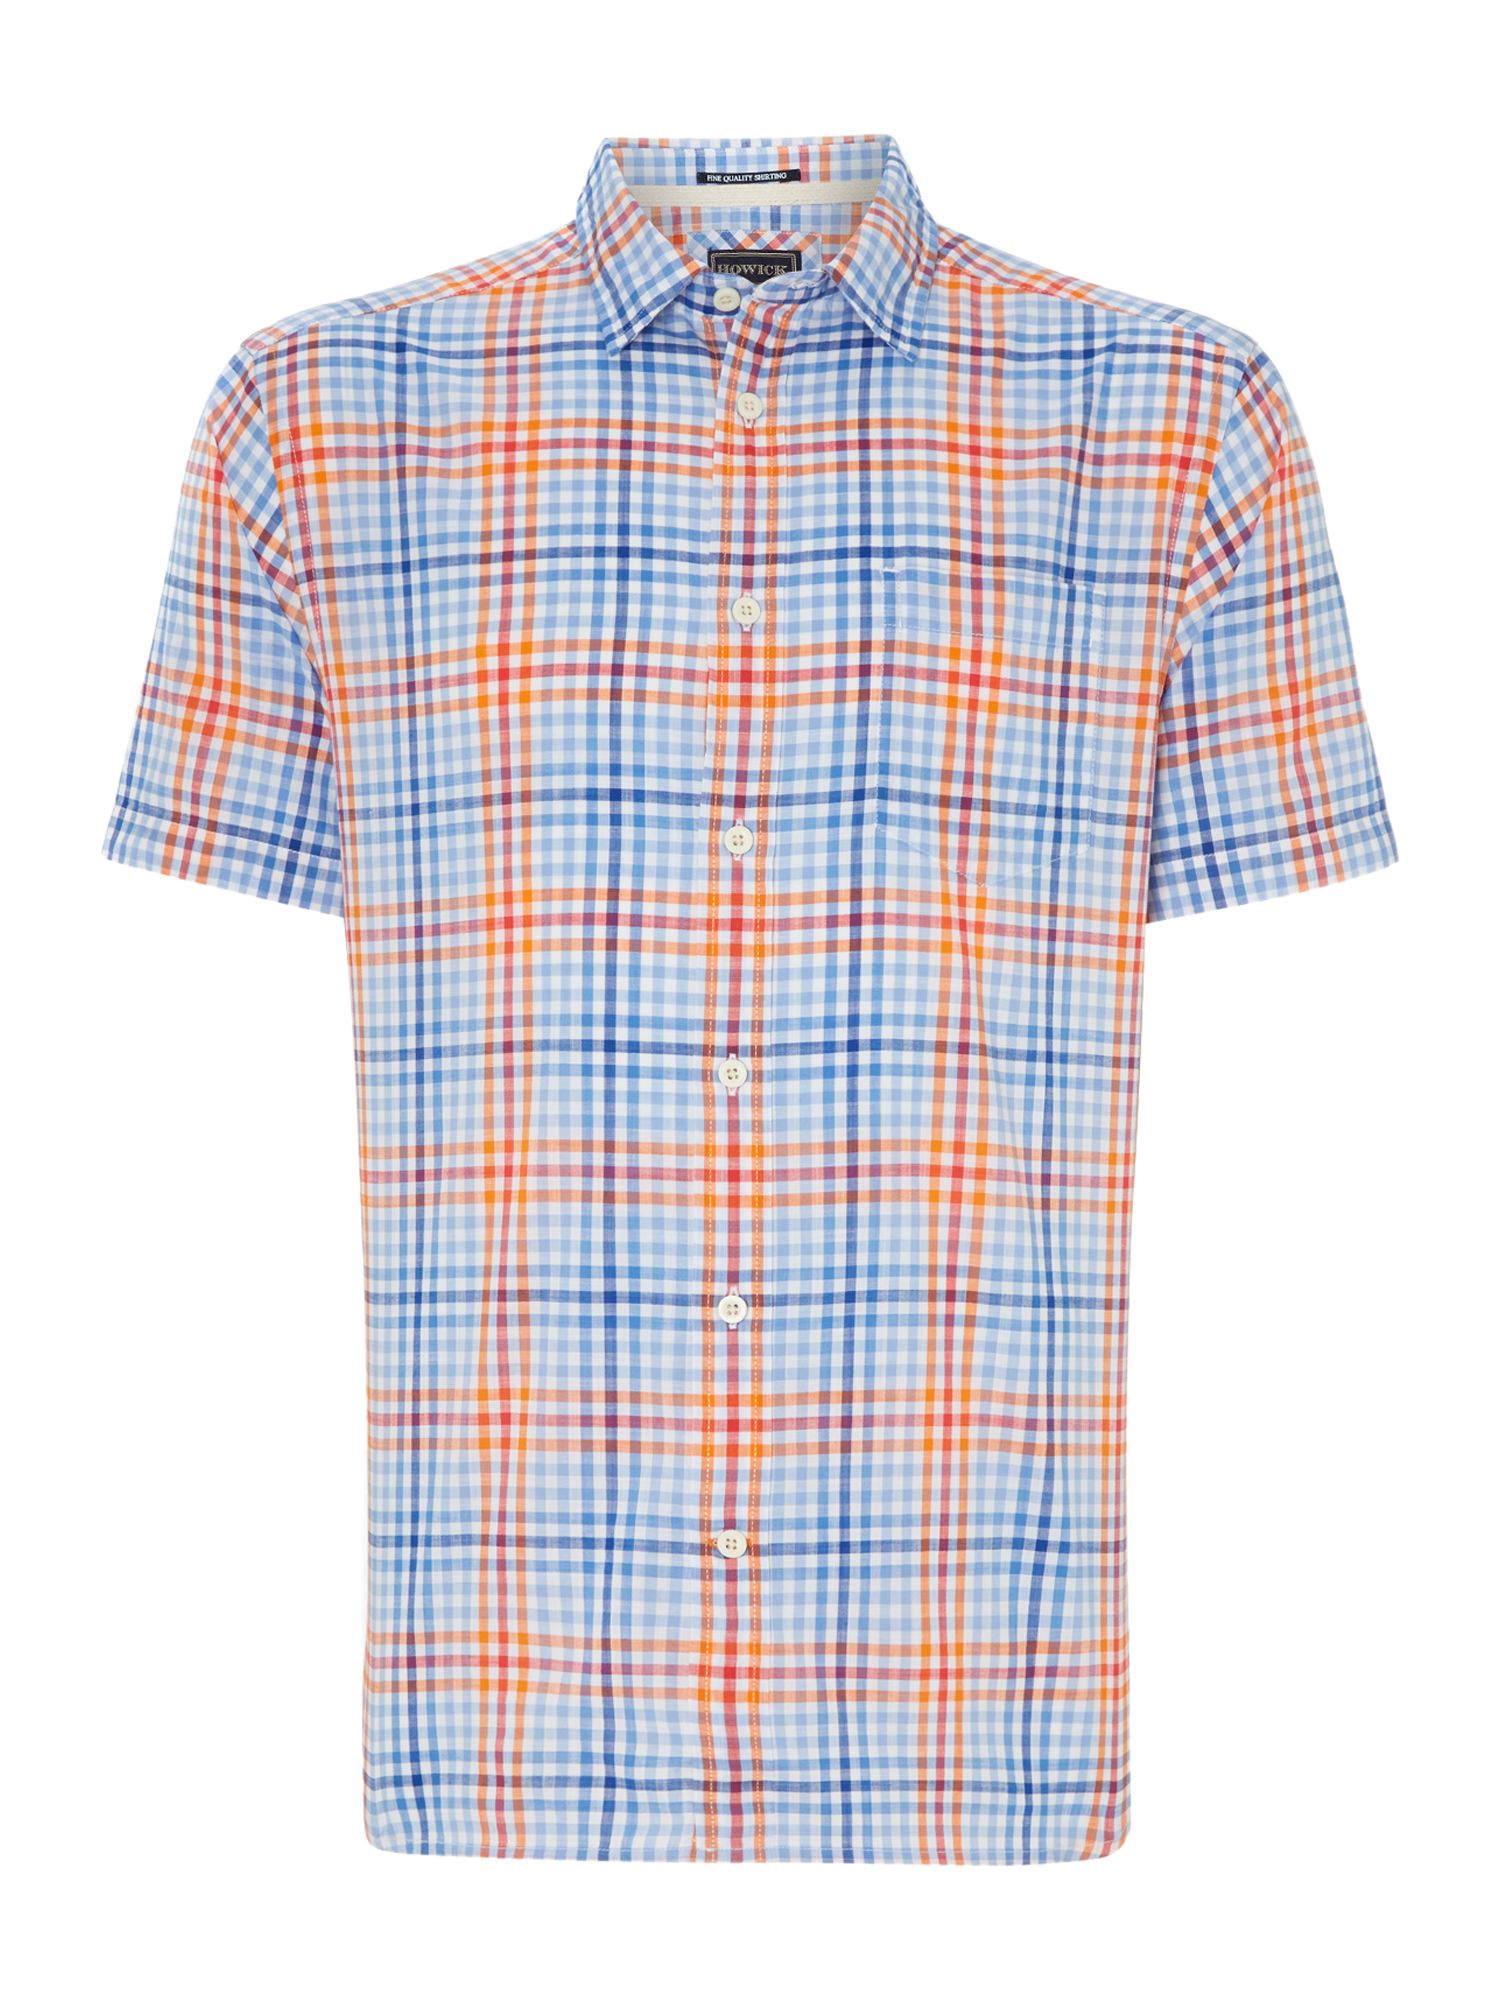 ripley gingham short sleeved shirt